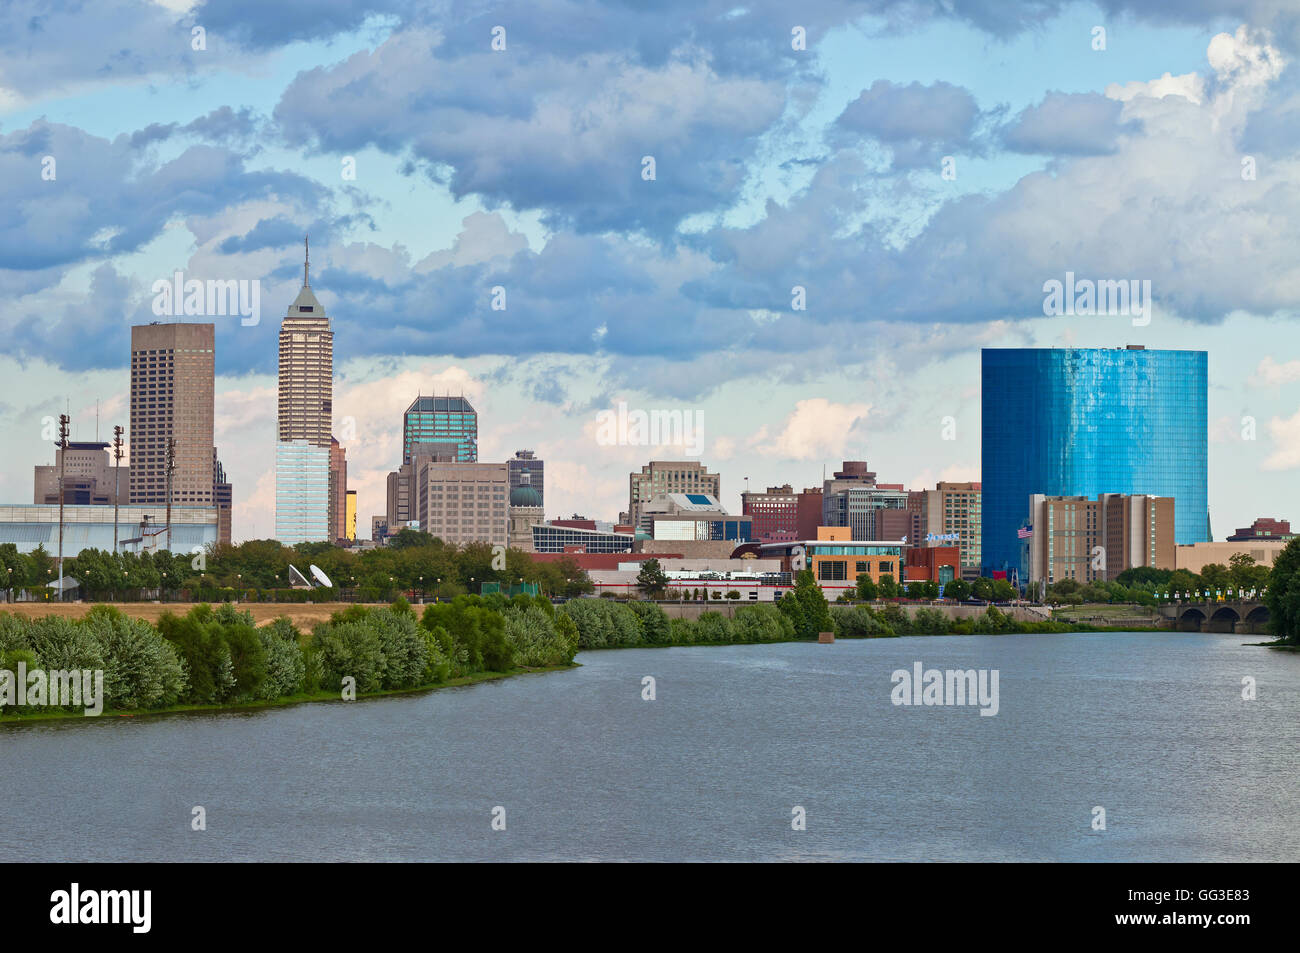 view of indianapolis indiana skyline from river image of summer